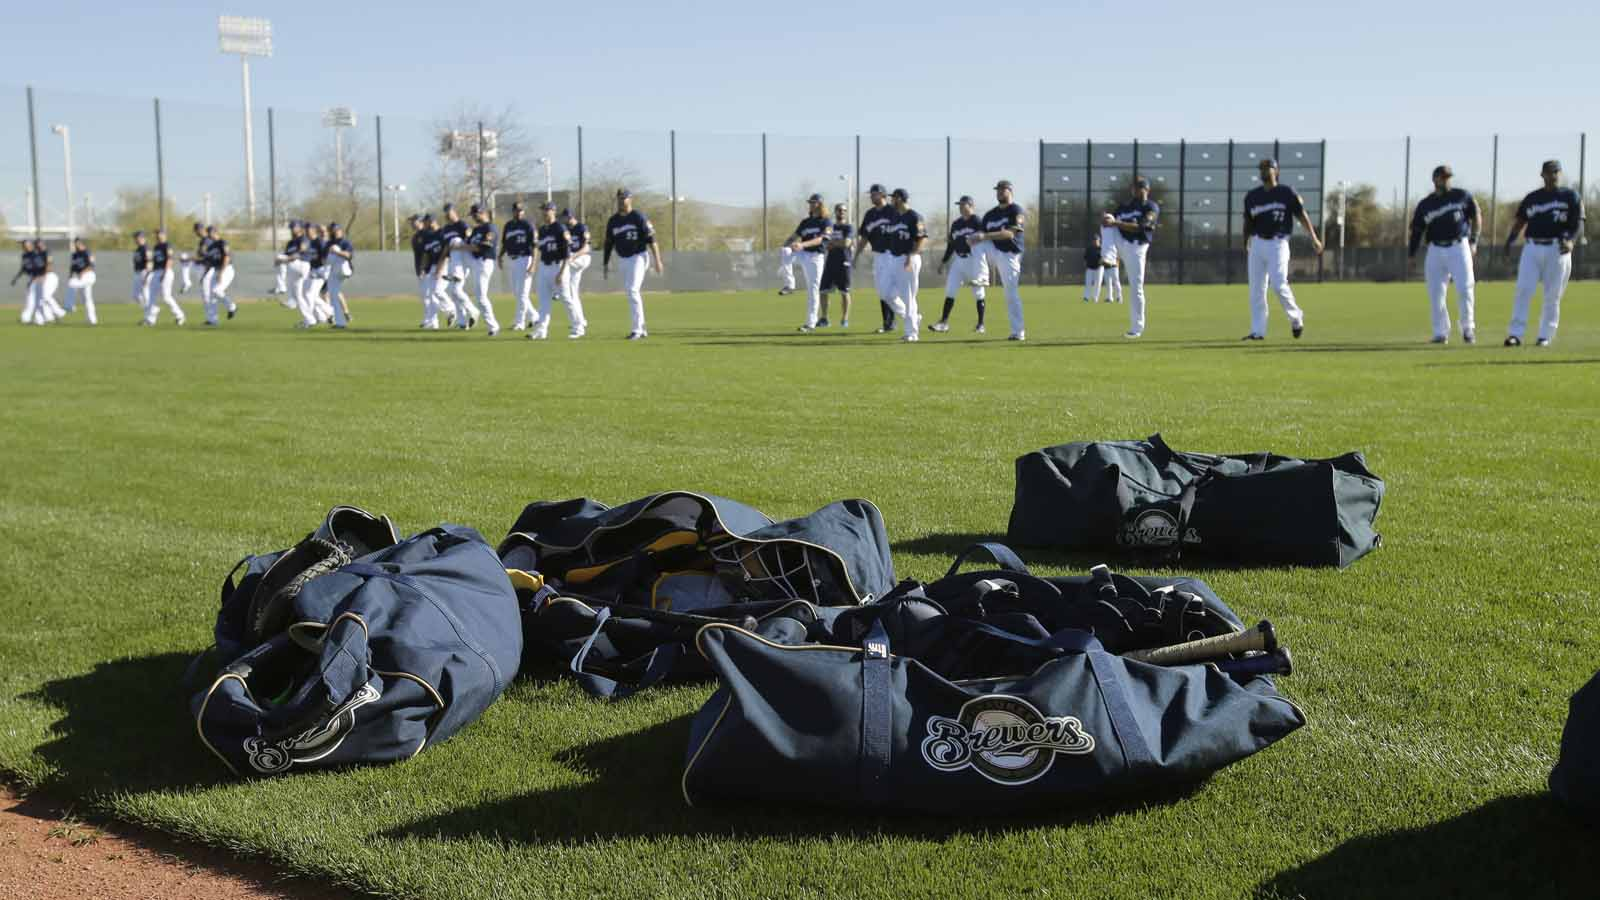 Thursday, Feb. 16: Milwaukee Brewers pitchers and catchers warm up before spring training camp at Maryvale Baseball Park in Maryvale, Ariz.